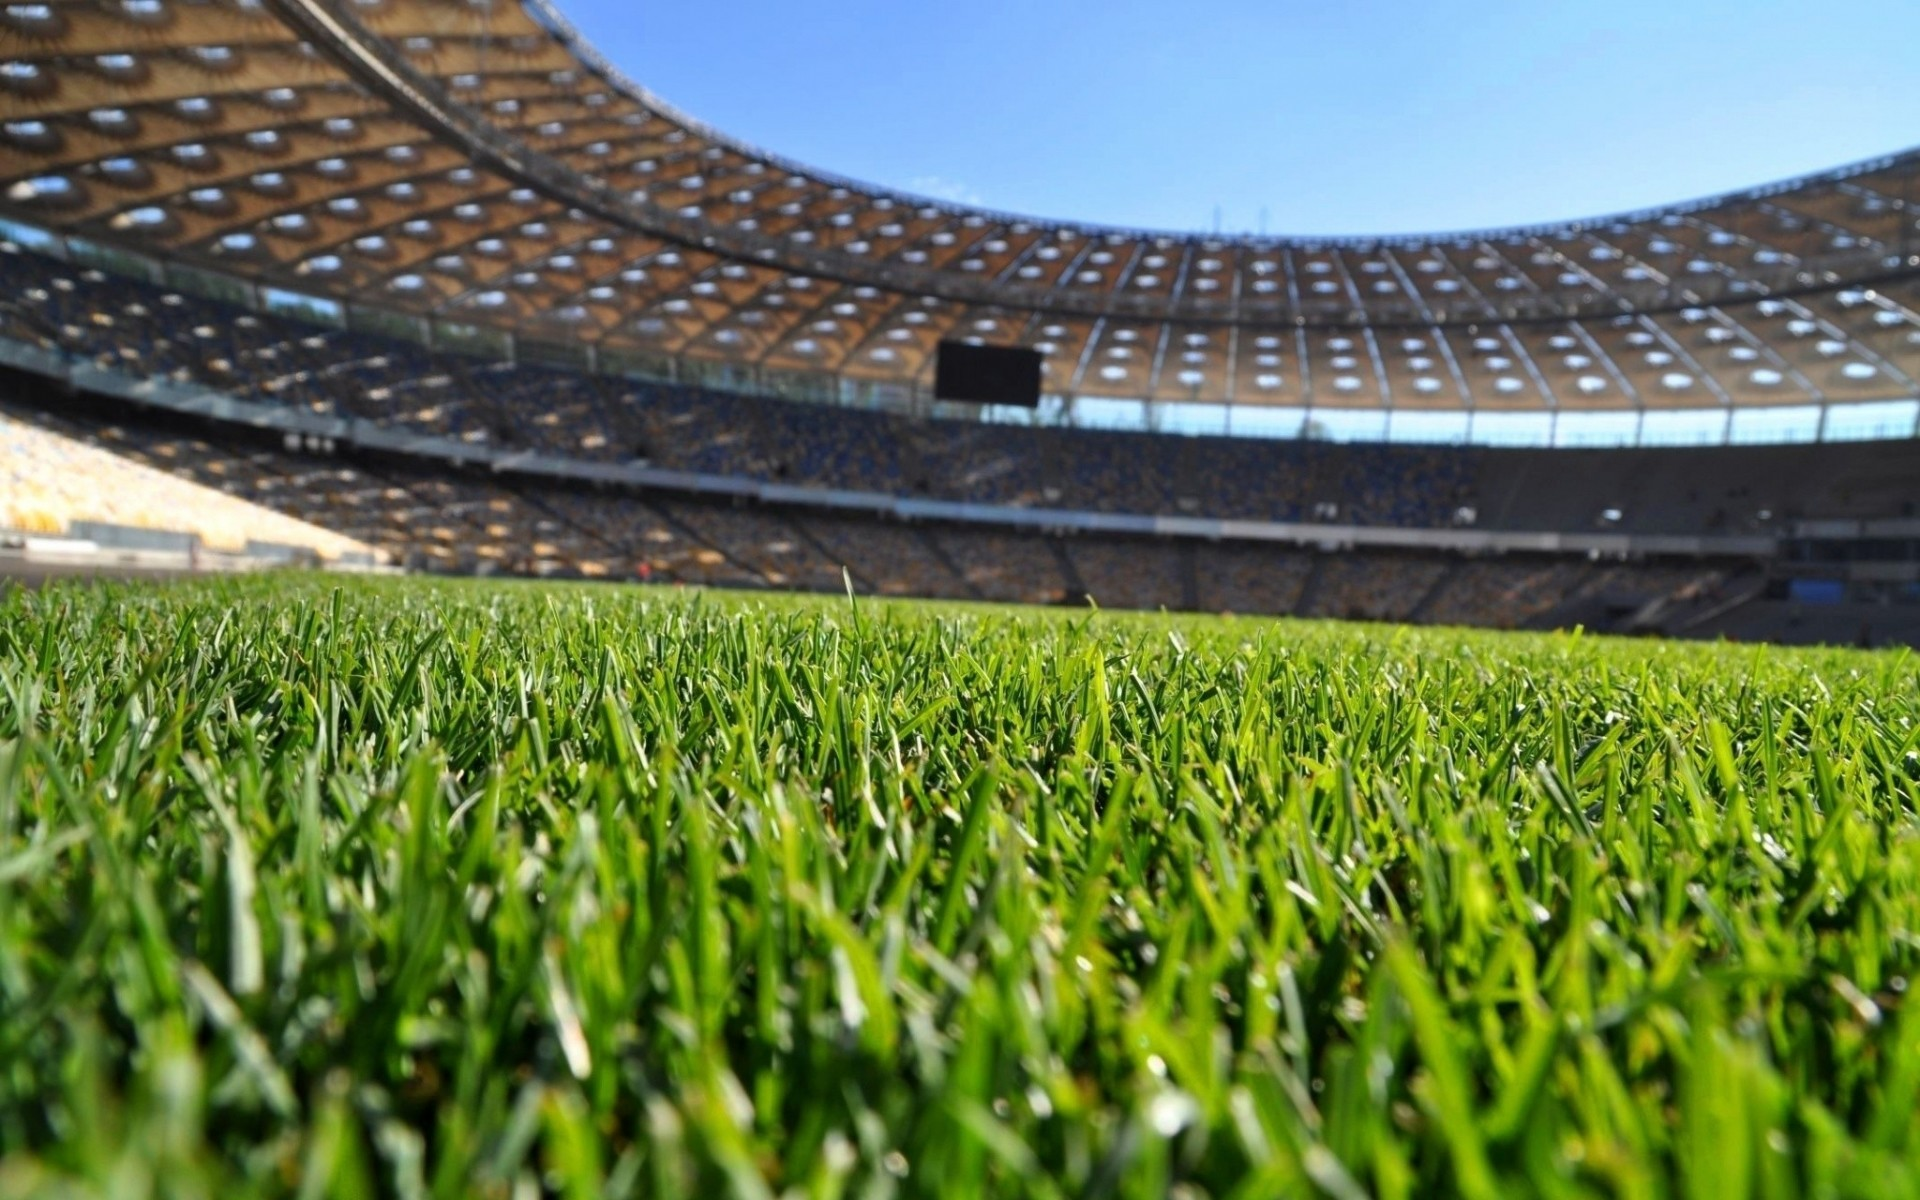 Image for Soccer Field Cool Wallpapers